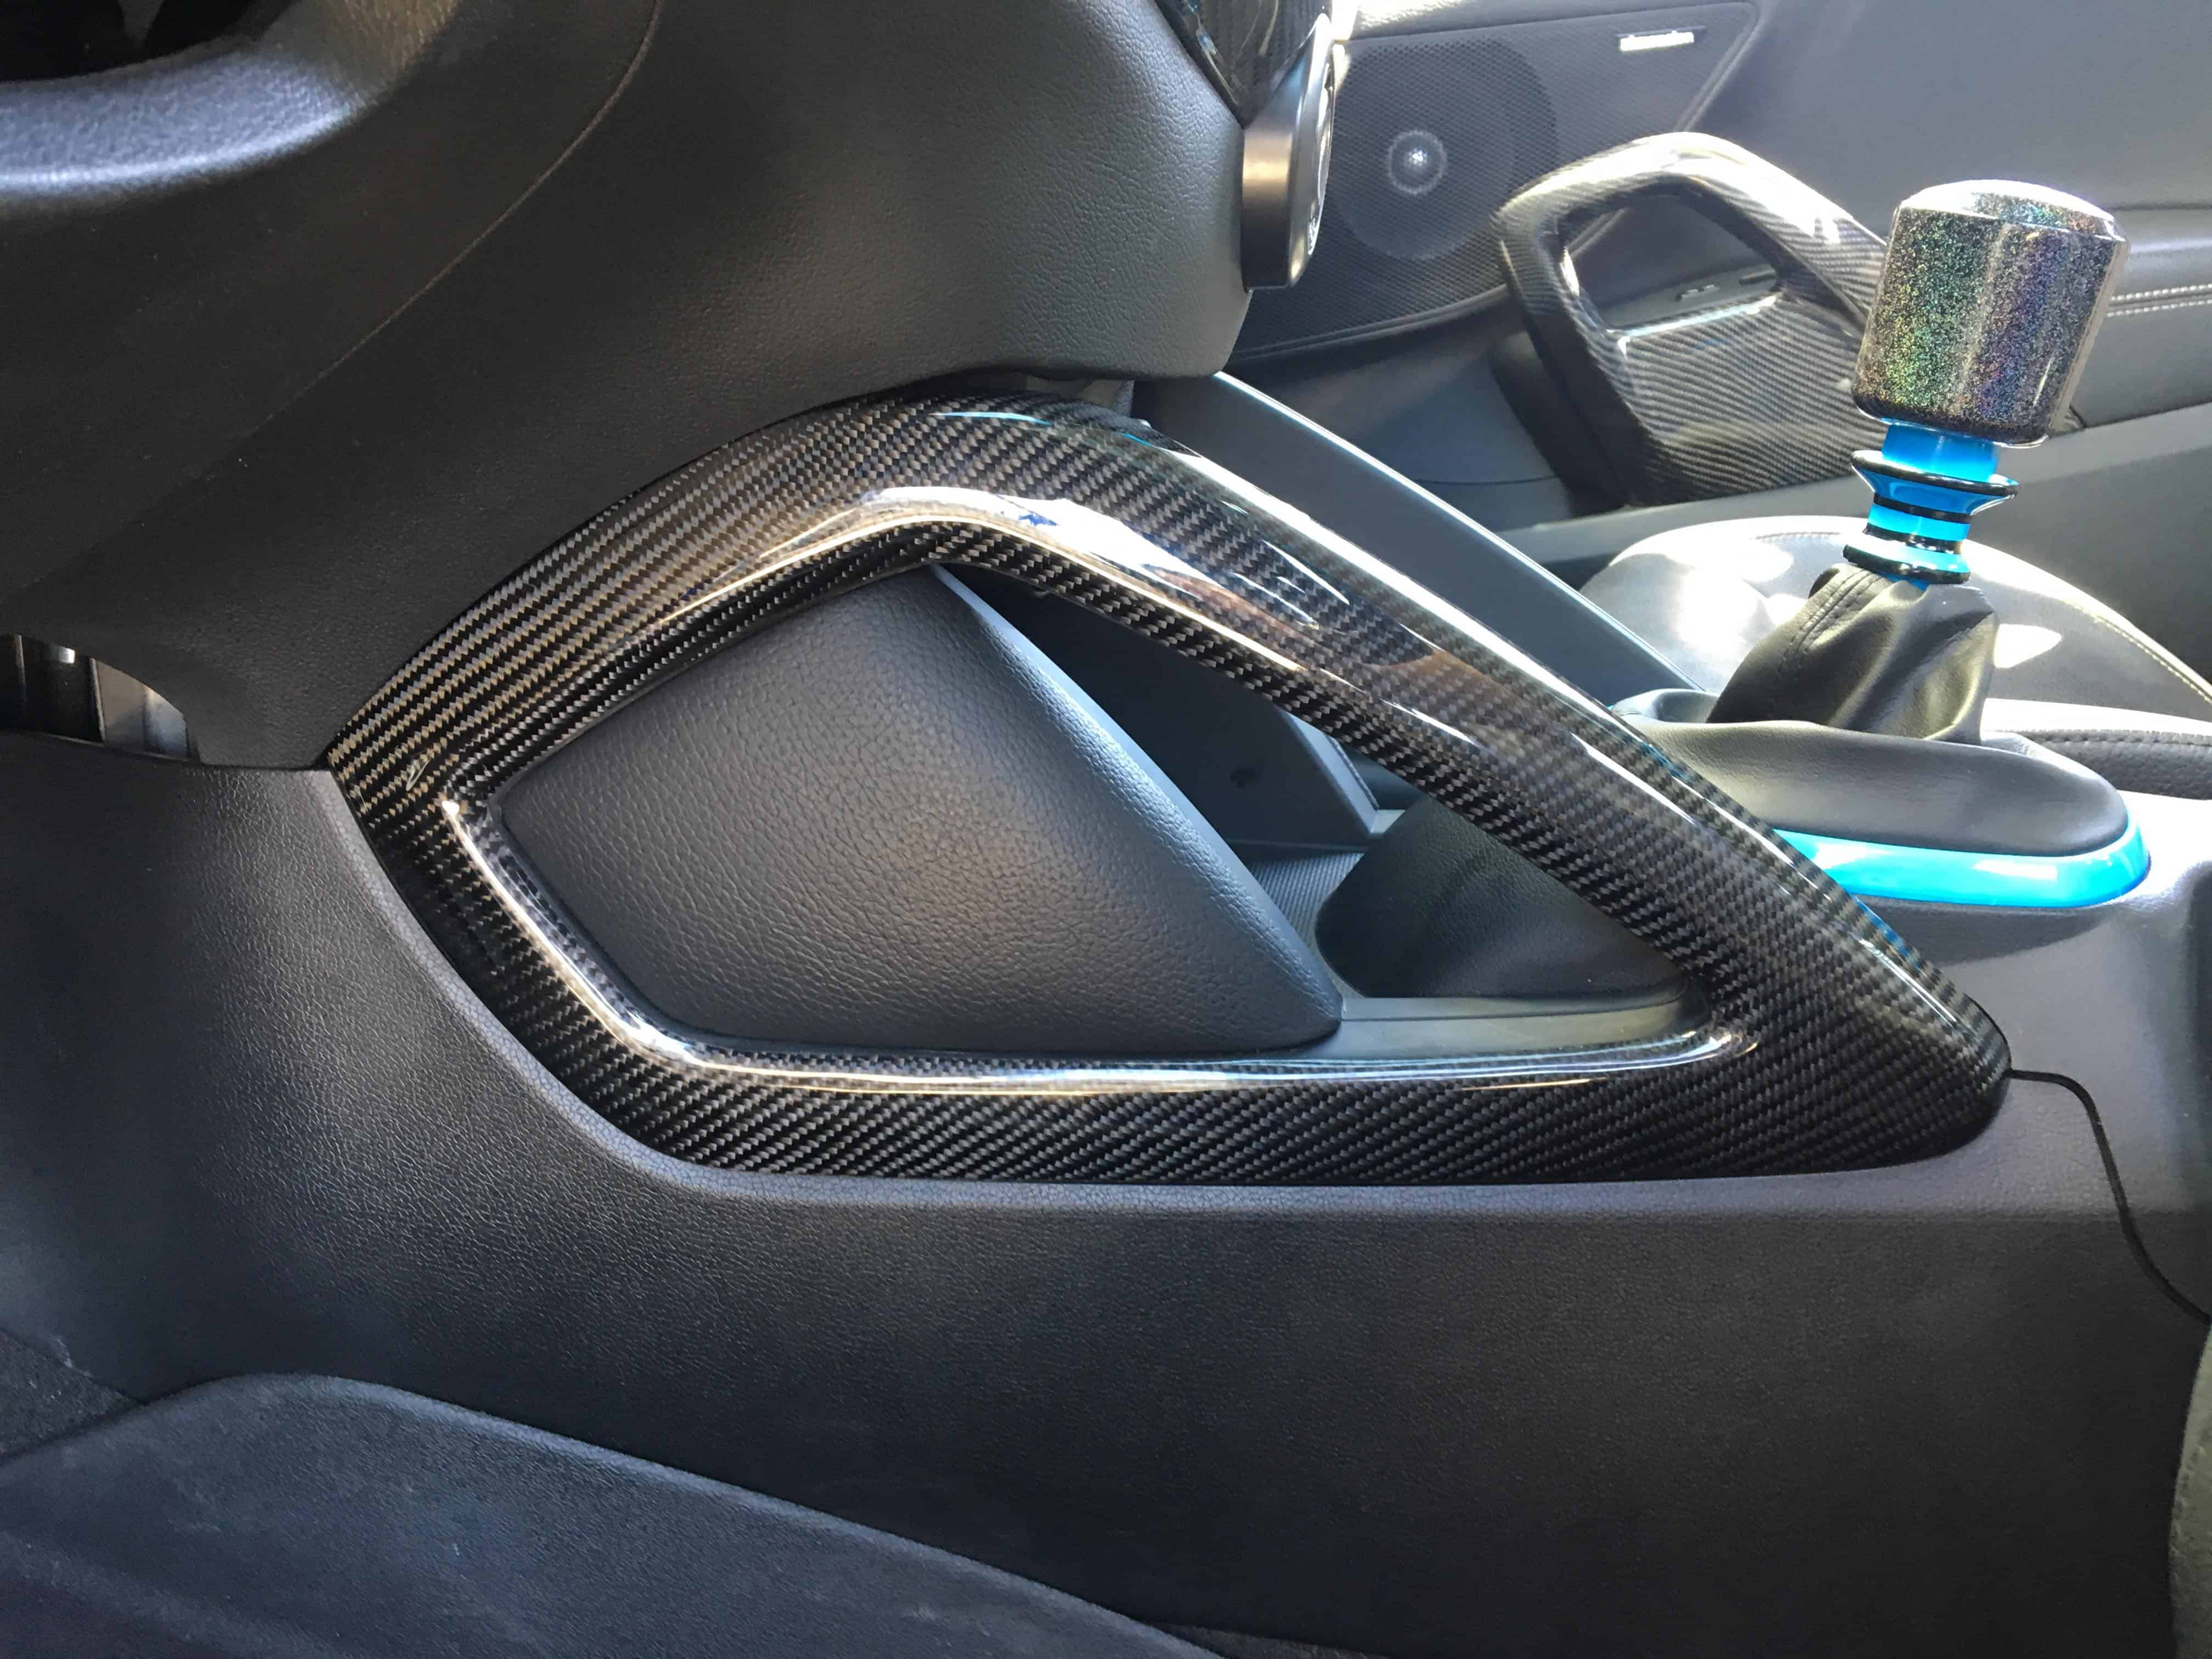 Hyundai veloster carbon fiber center console handles oem Hyundai veloster interior accessories